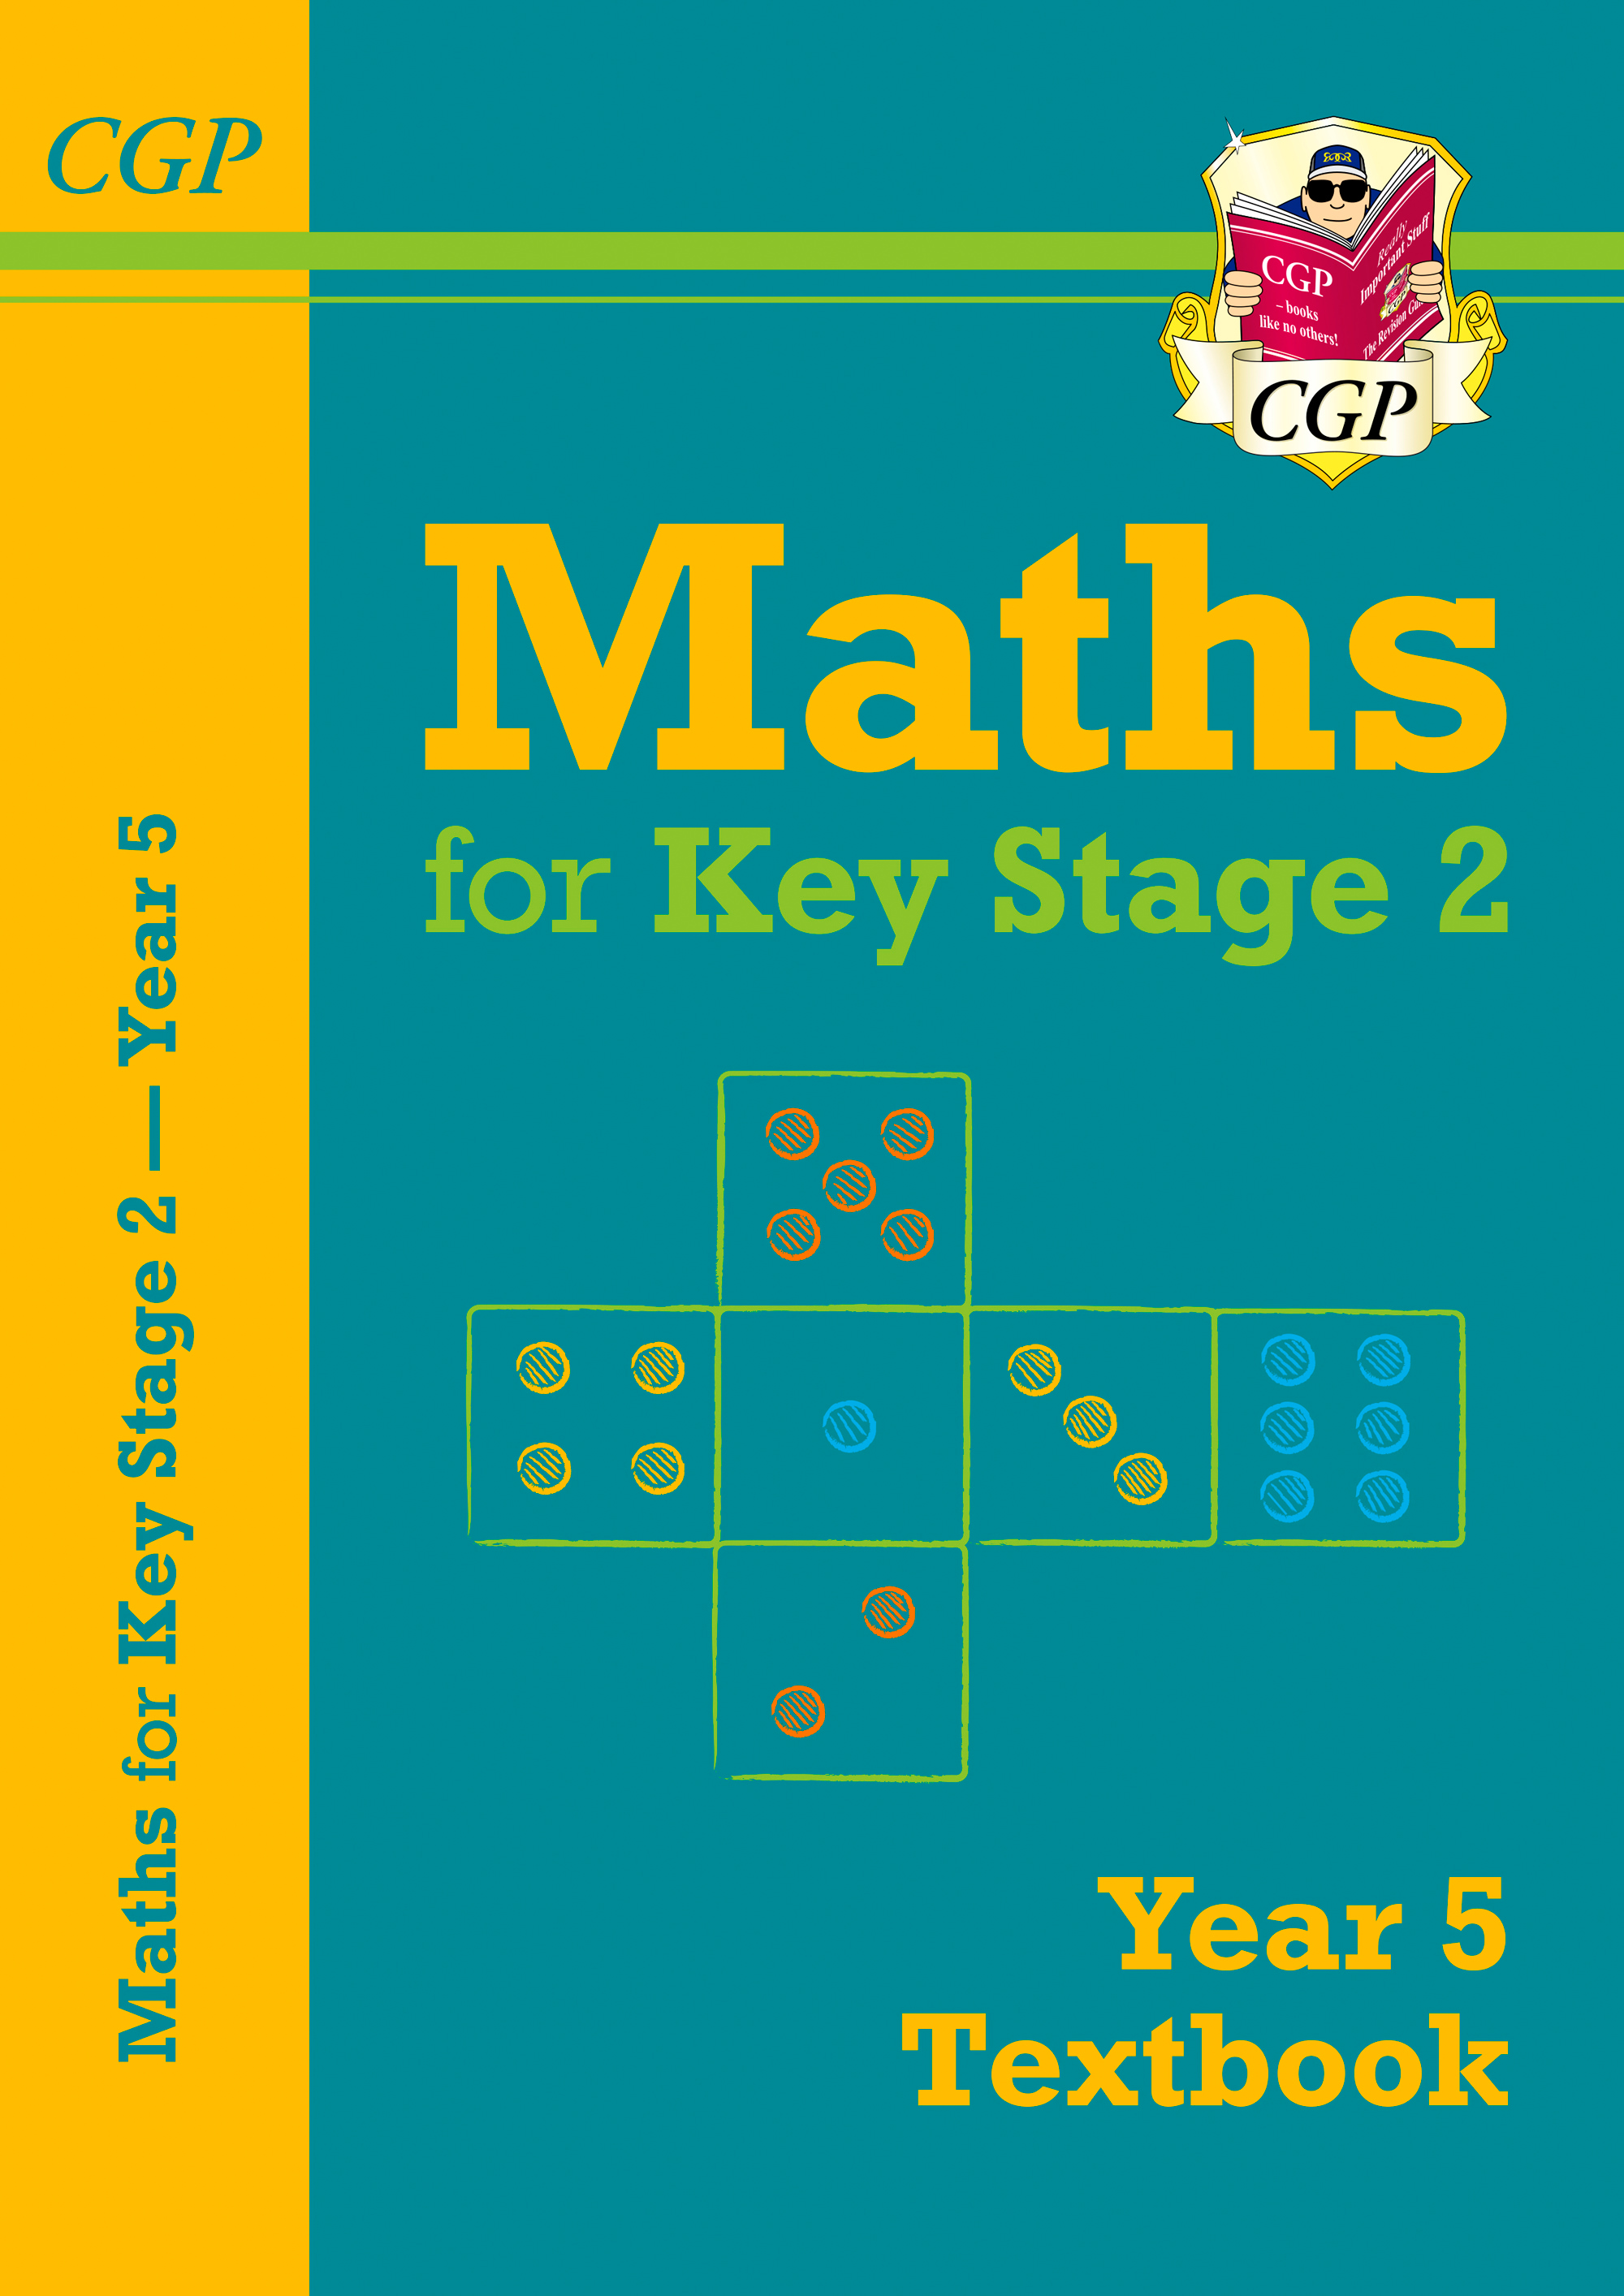 M5PB21DK - New KS2 Maths Textbook - Year 5